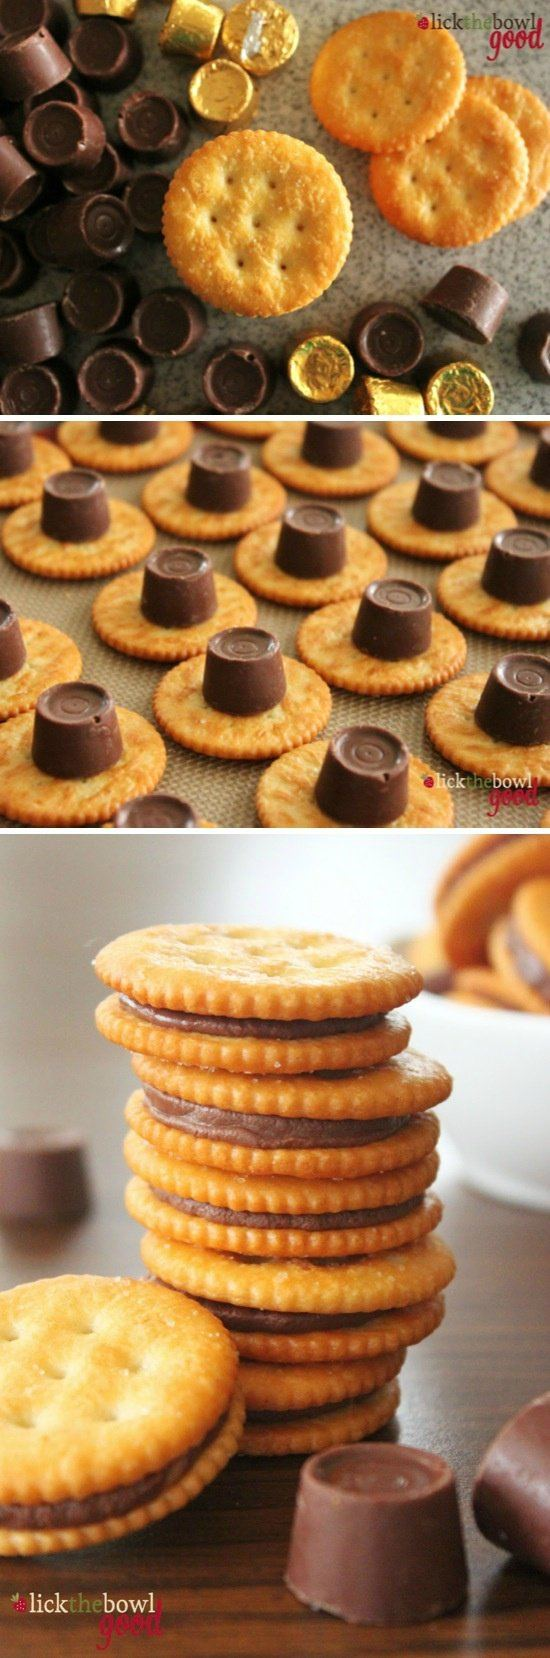 ingenioso galletas con chocolate